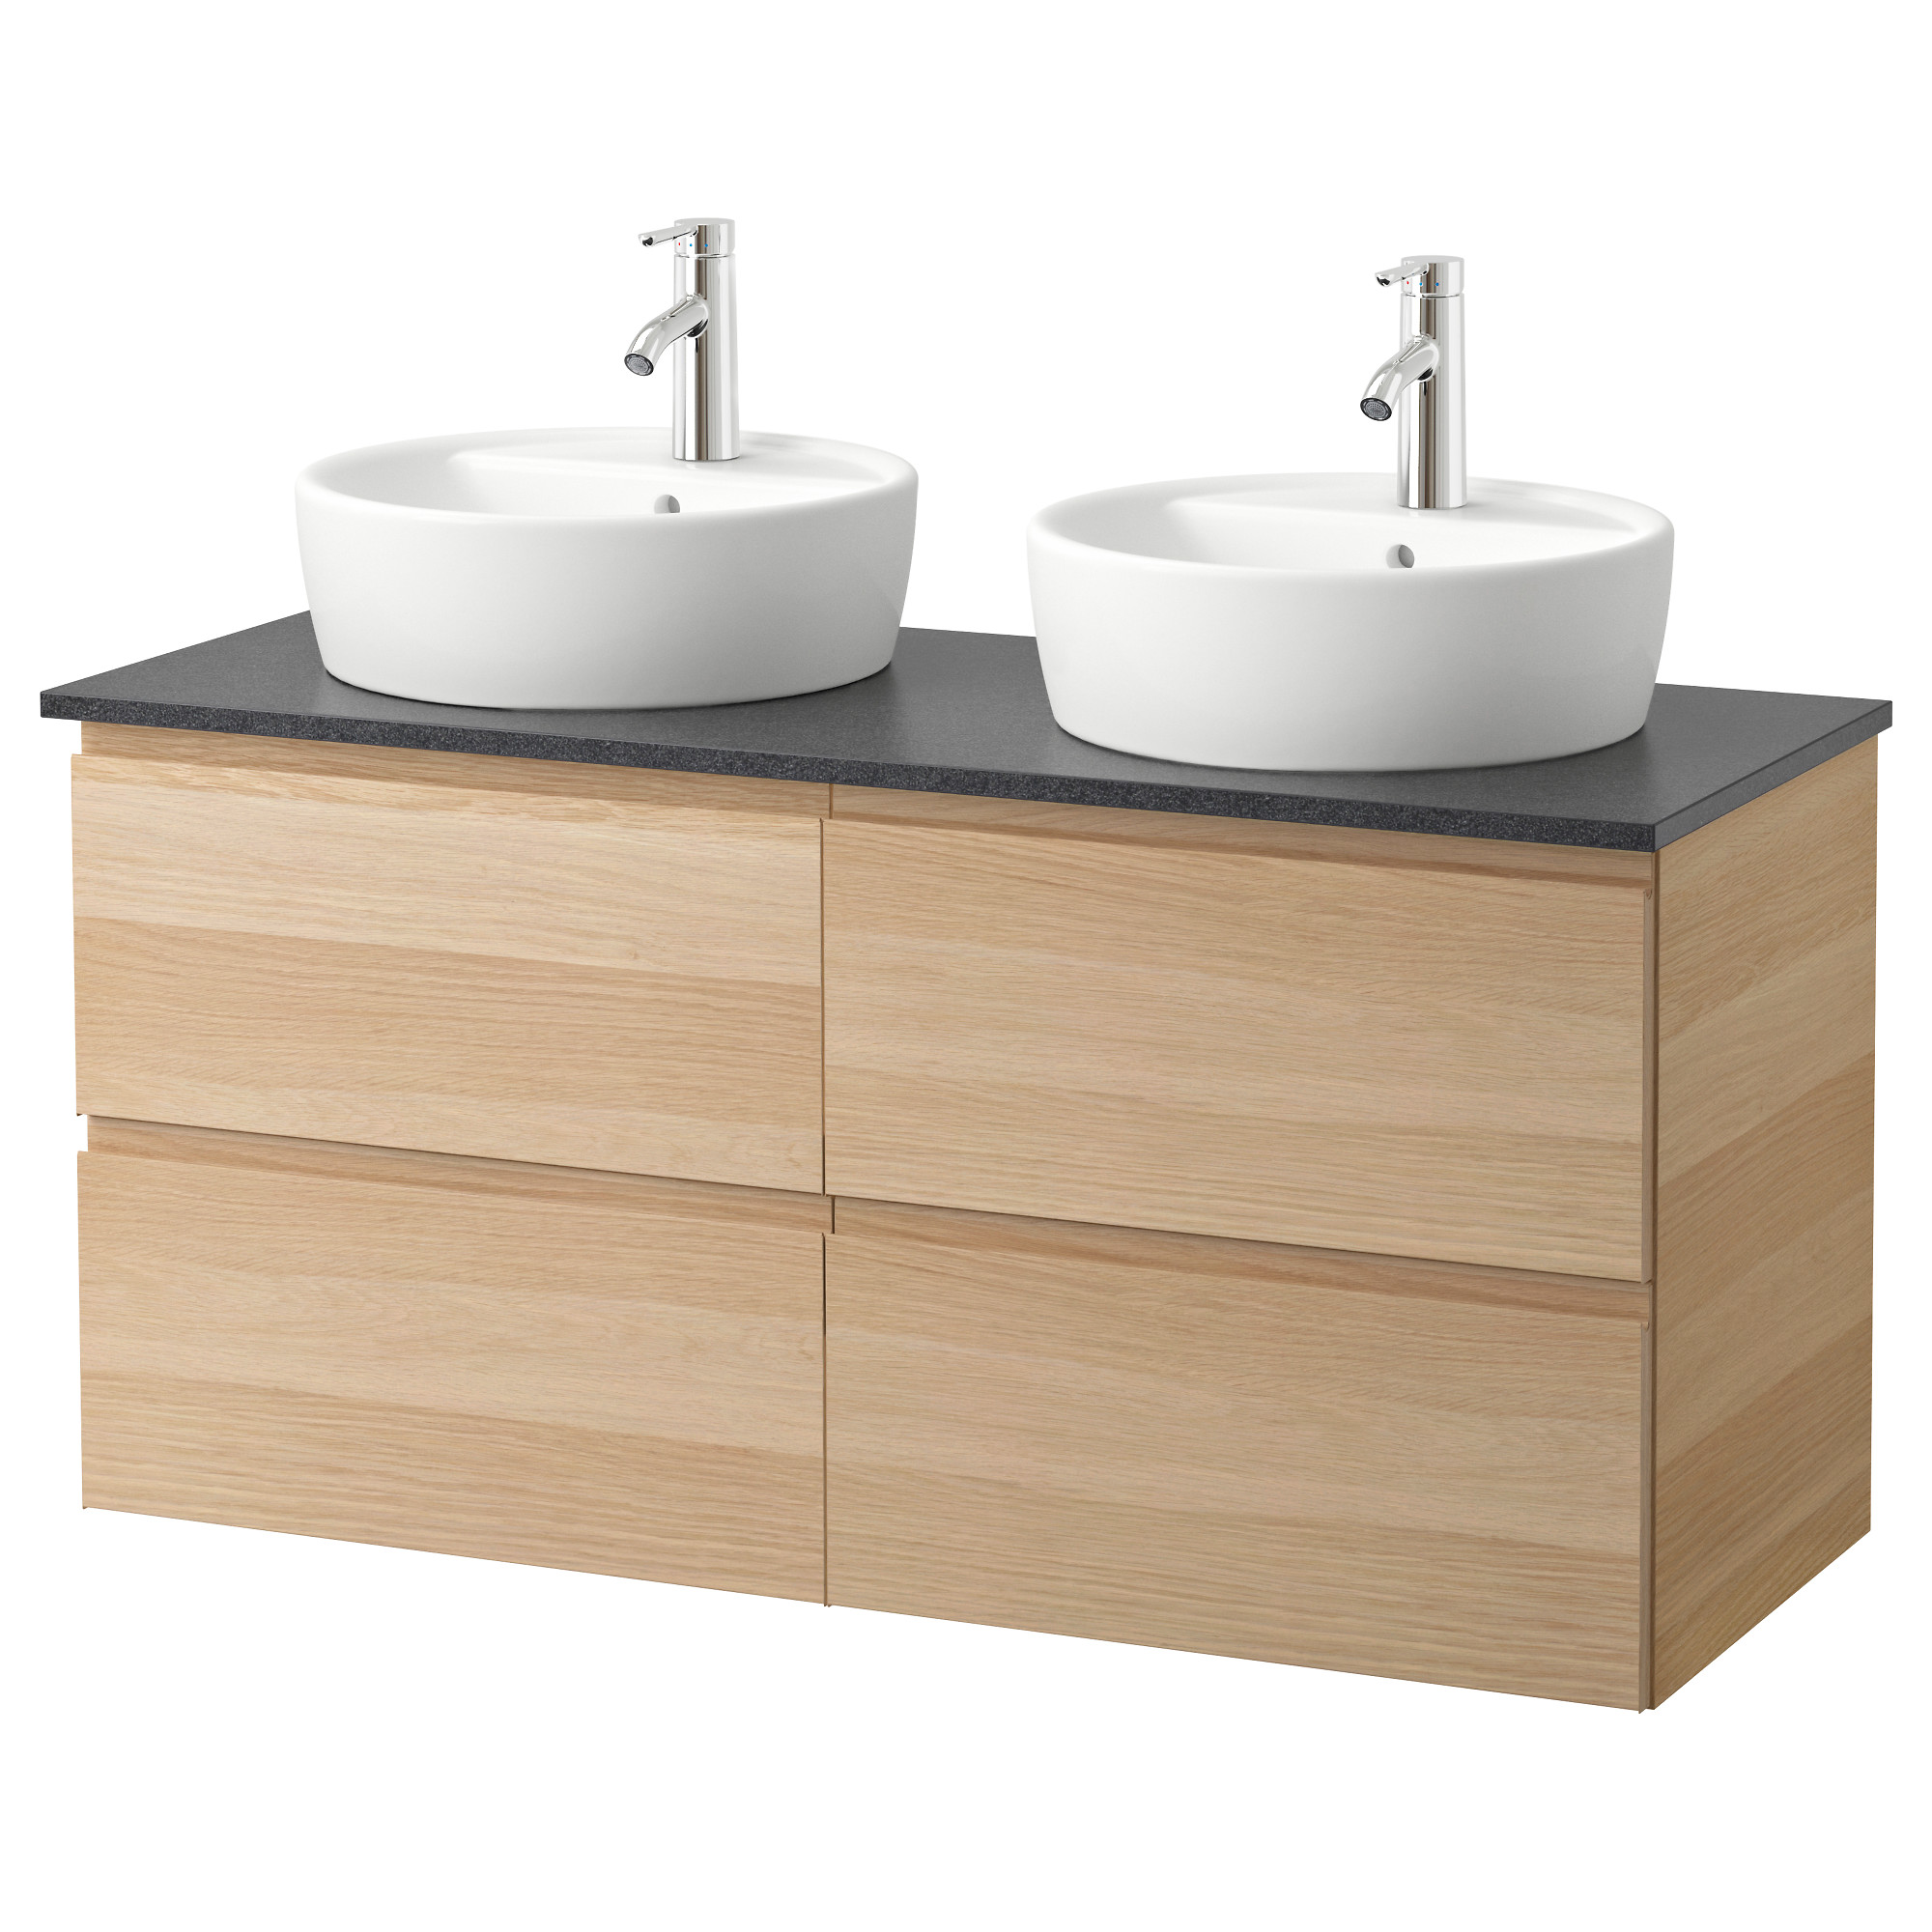 Double vasque salle de bain dimension for Meuble double vasque 100 cm